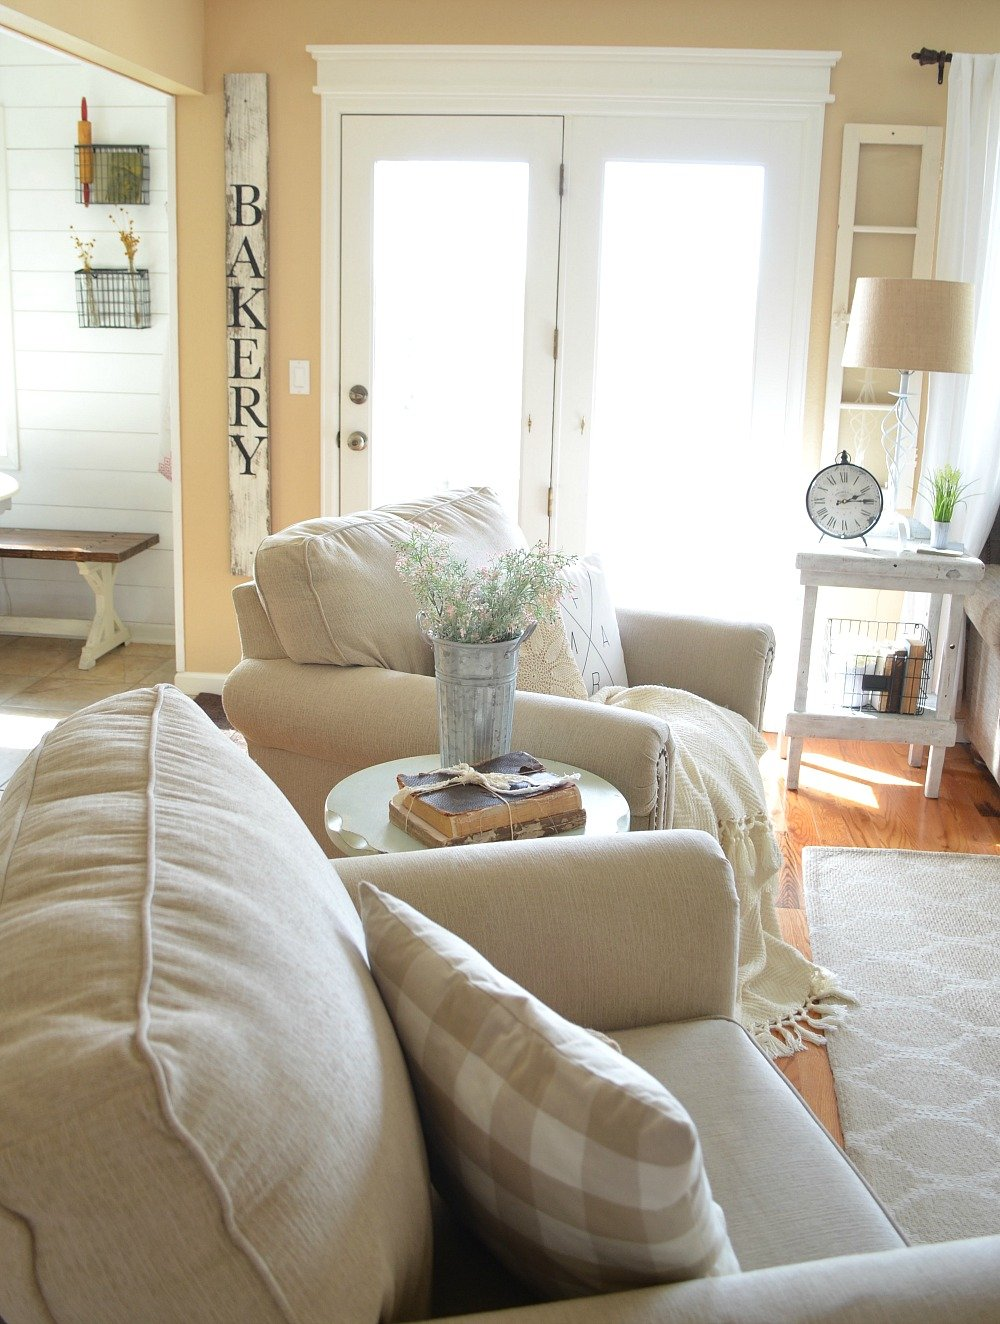 Refreshed Modern Farmhouse Living Room. Great ideas for late winter and early spring decor.